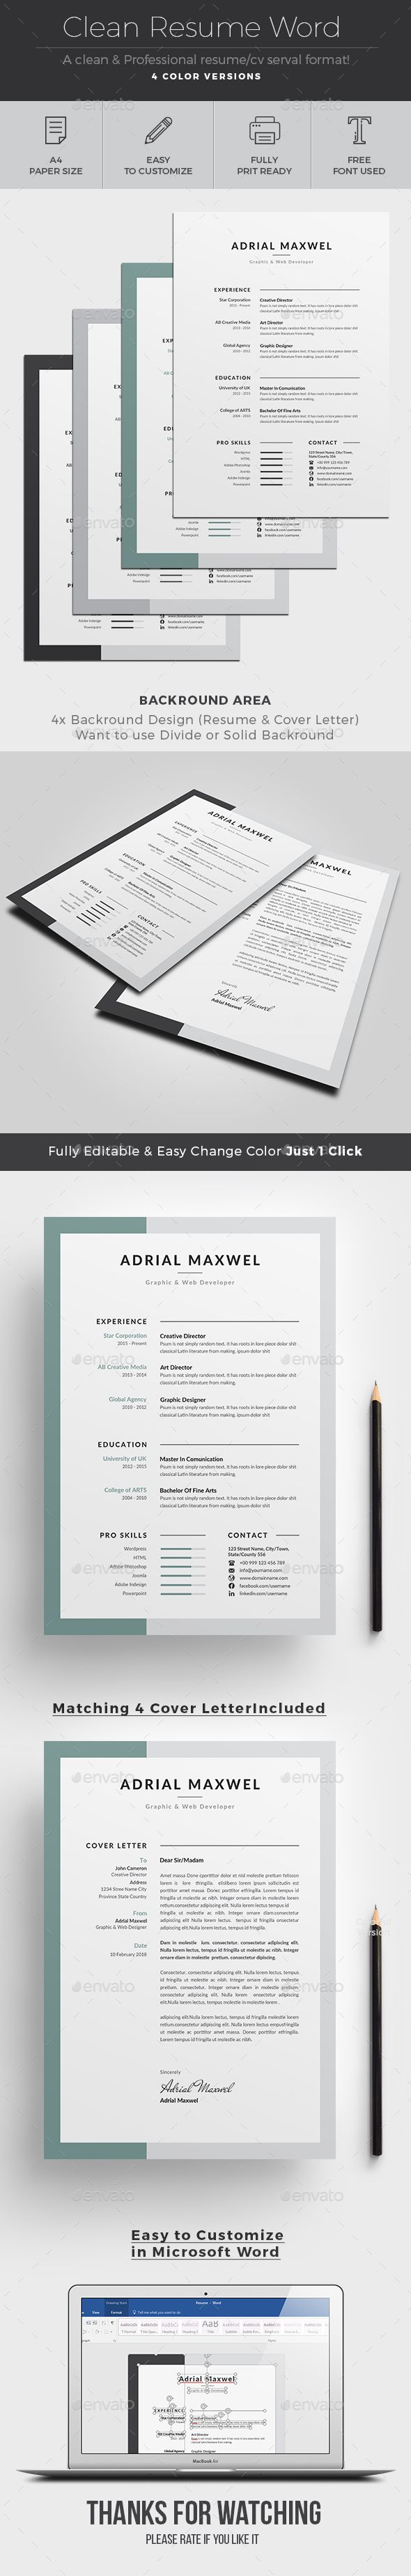 2 pages resume cv pack lambert by snipescientist in templates ...